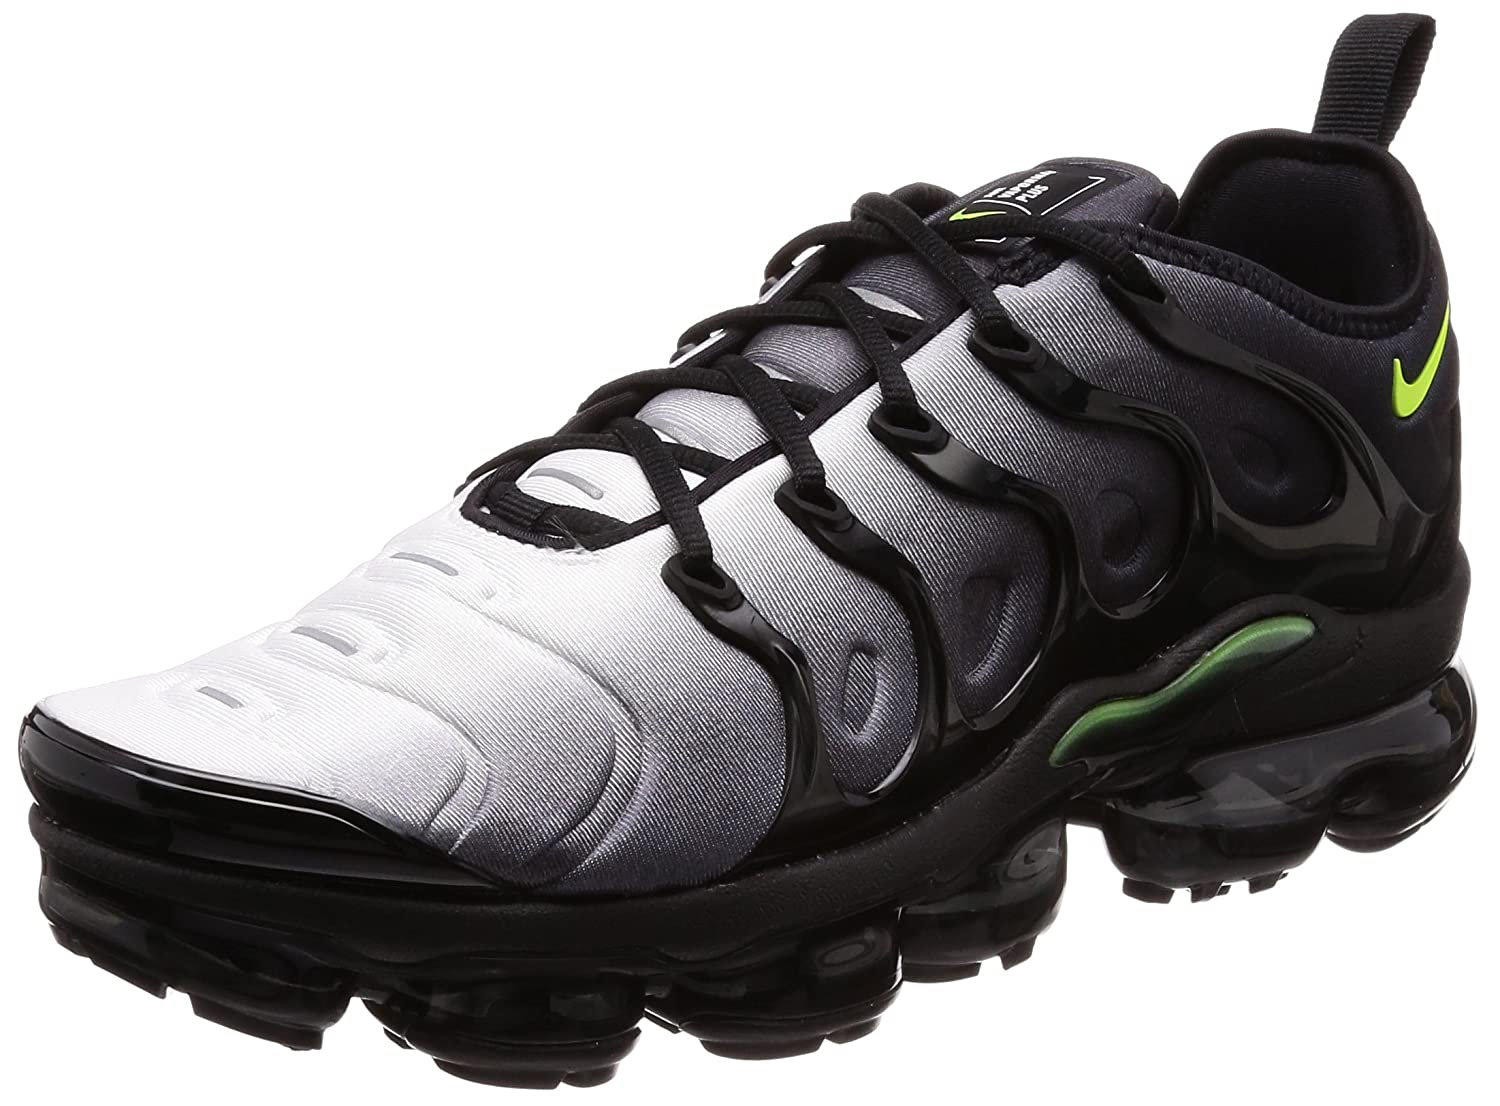 half off caa1f 6cea2 Nike Air Vapormax Plus Men s Trainers  Amazon.co.uk  Shoes   Bags